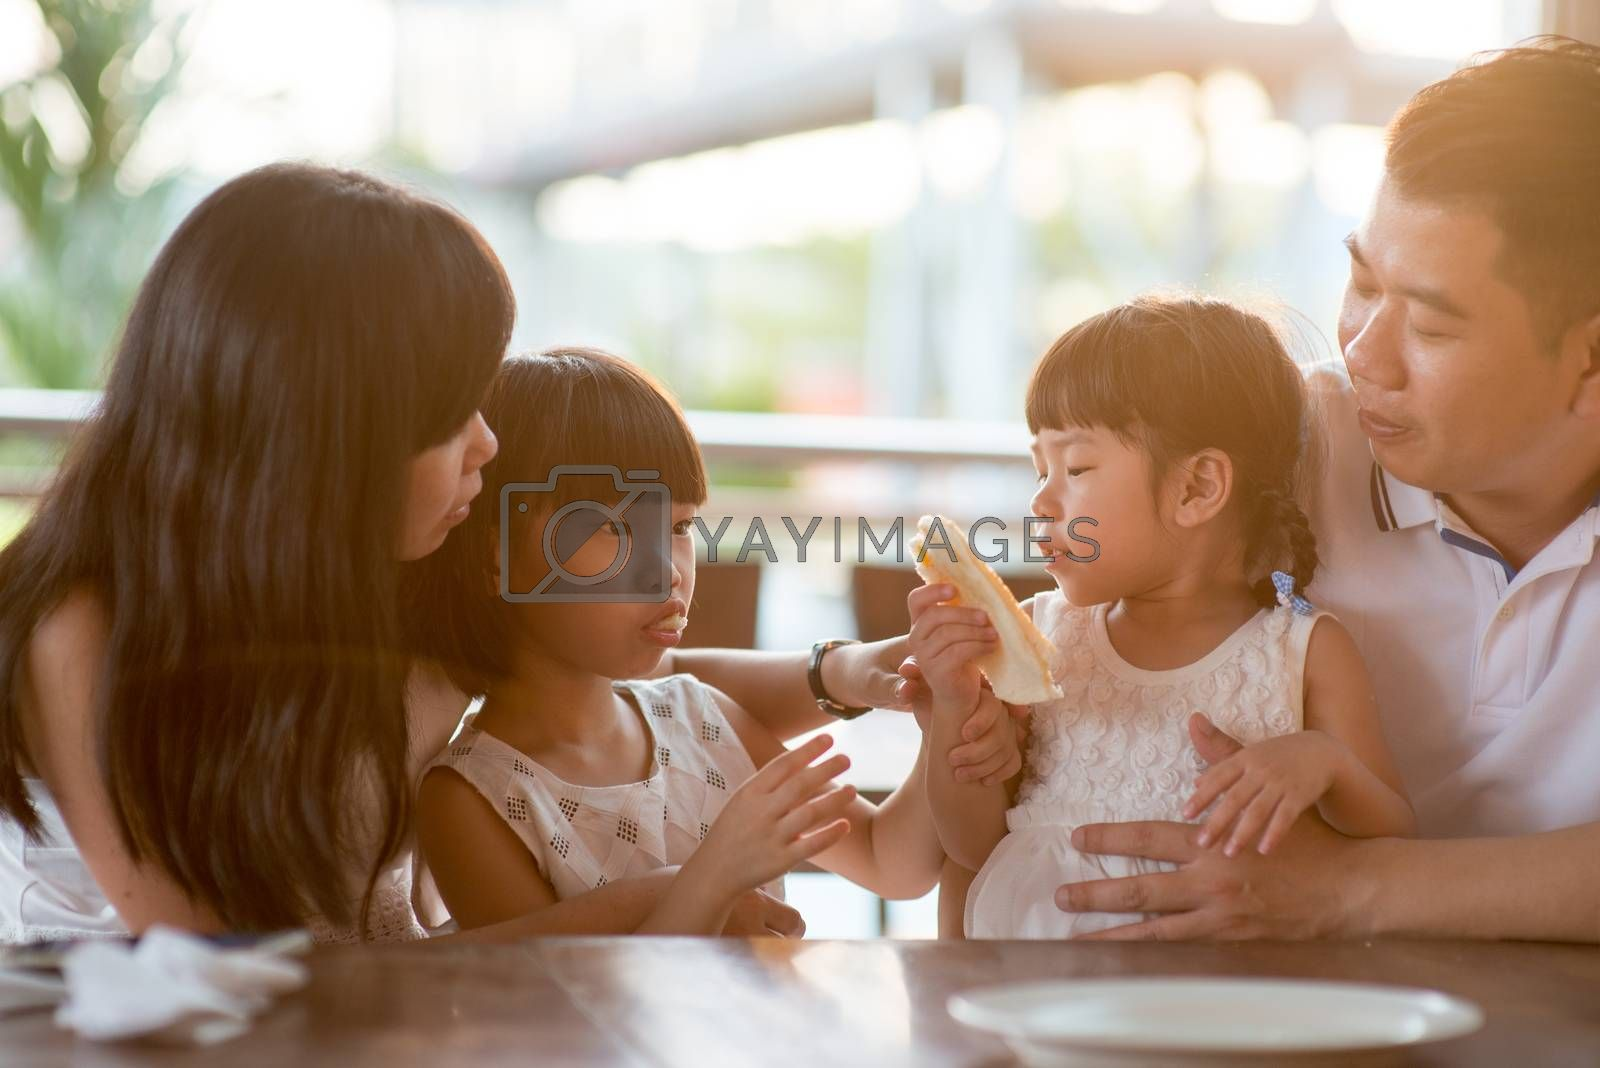 Happy children eating and sharing bread at cafeteria. Asian family outdoor lifestyle with natural light.